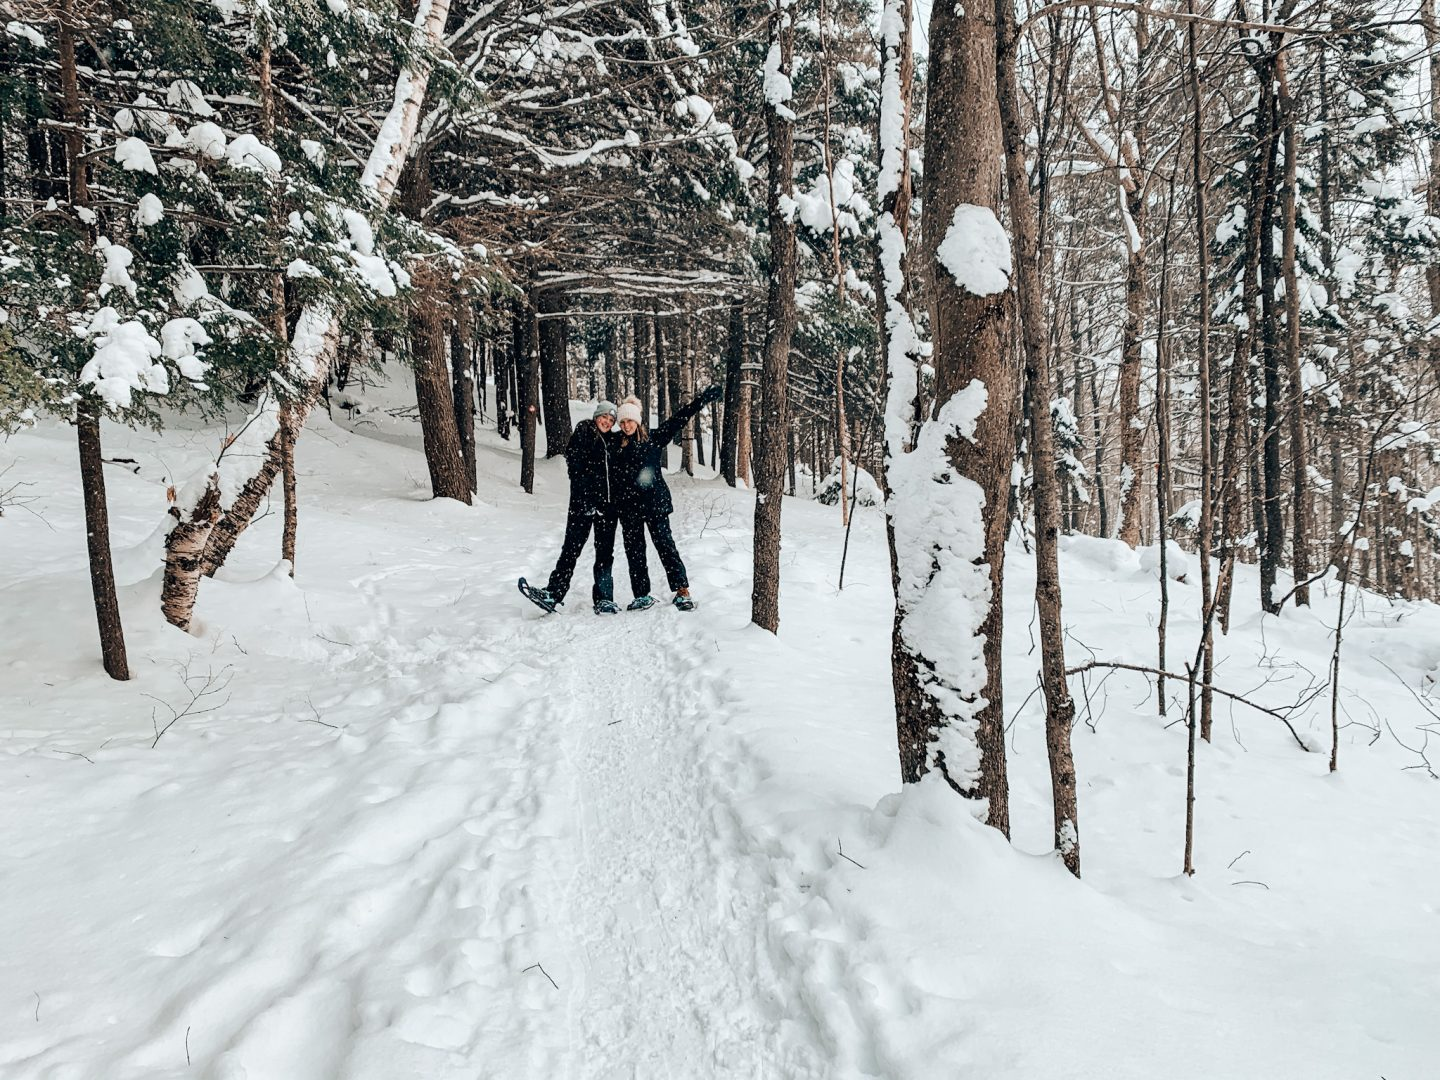 Two girls pose on snowy path in between trees